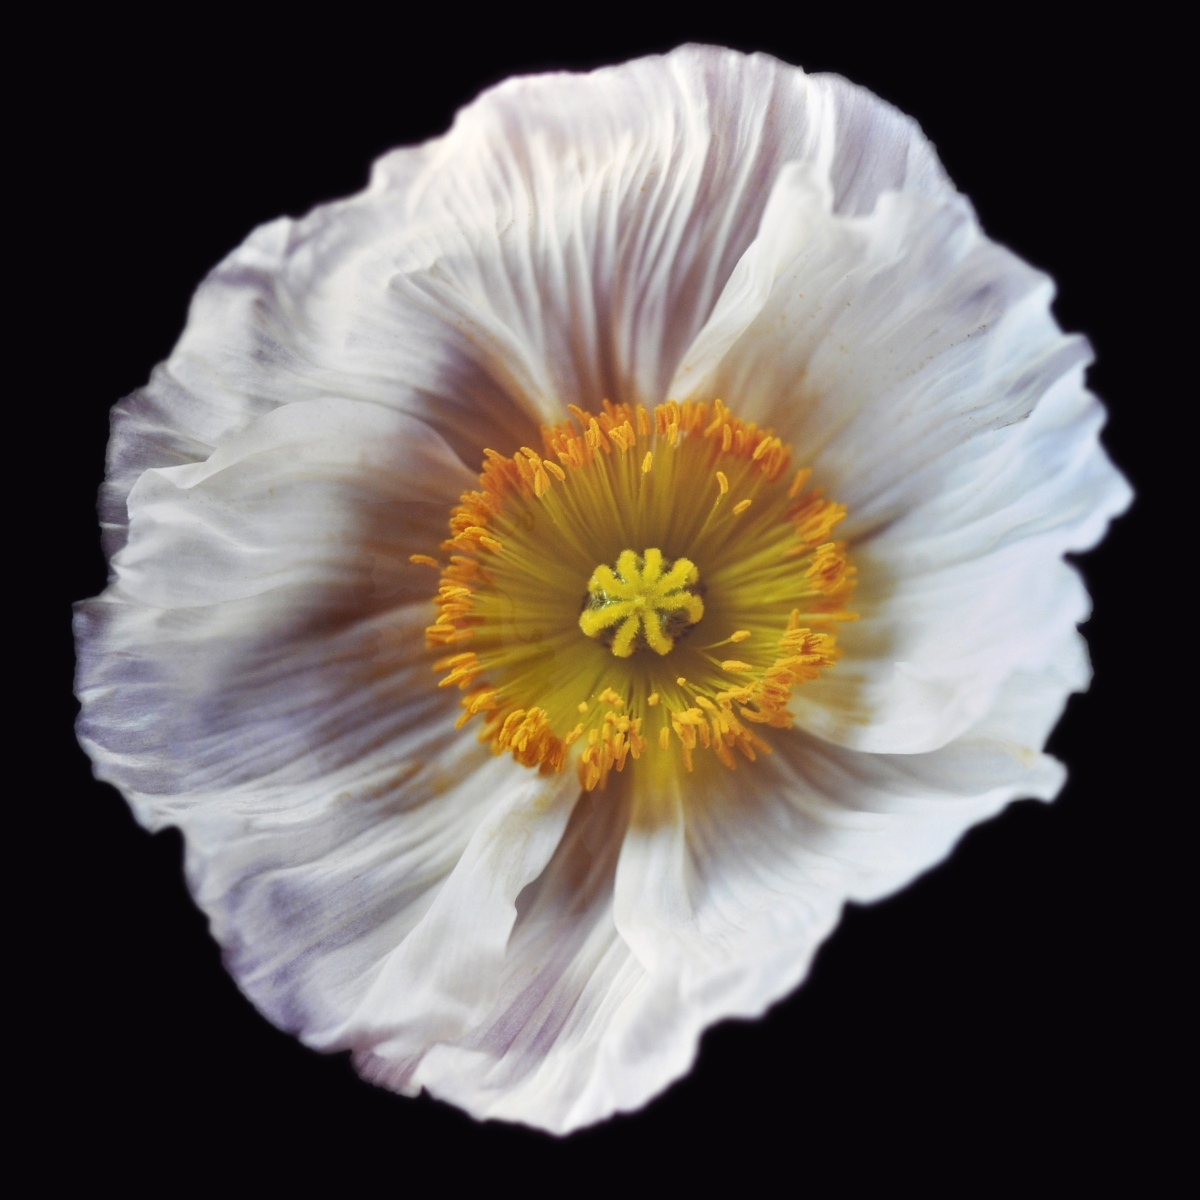 Rob and Nick Carter - RN1180, Icelandic Poppy, White, 2018 · © Copyright 2020